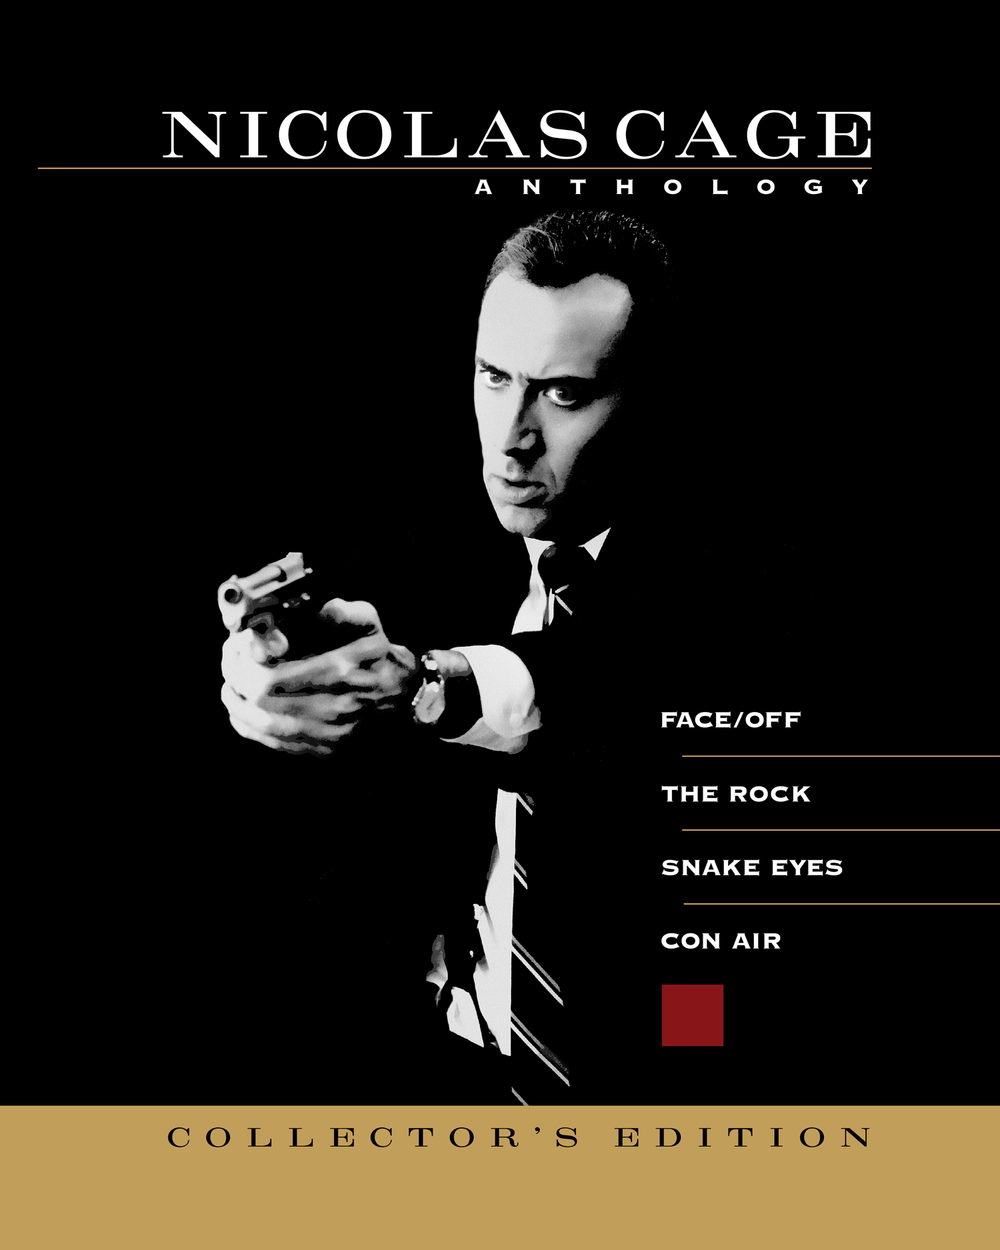 Arism_NickCage_4box_h.png